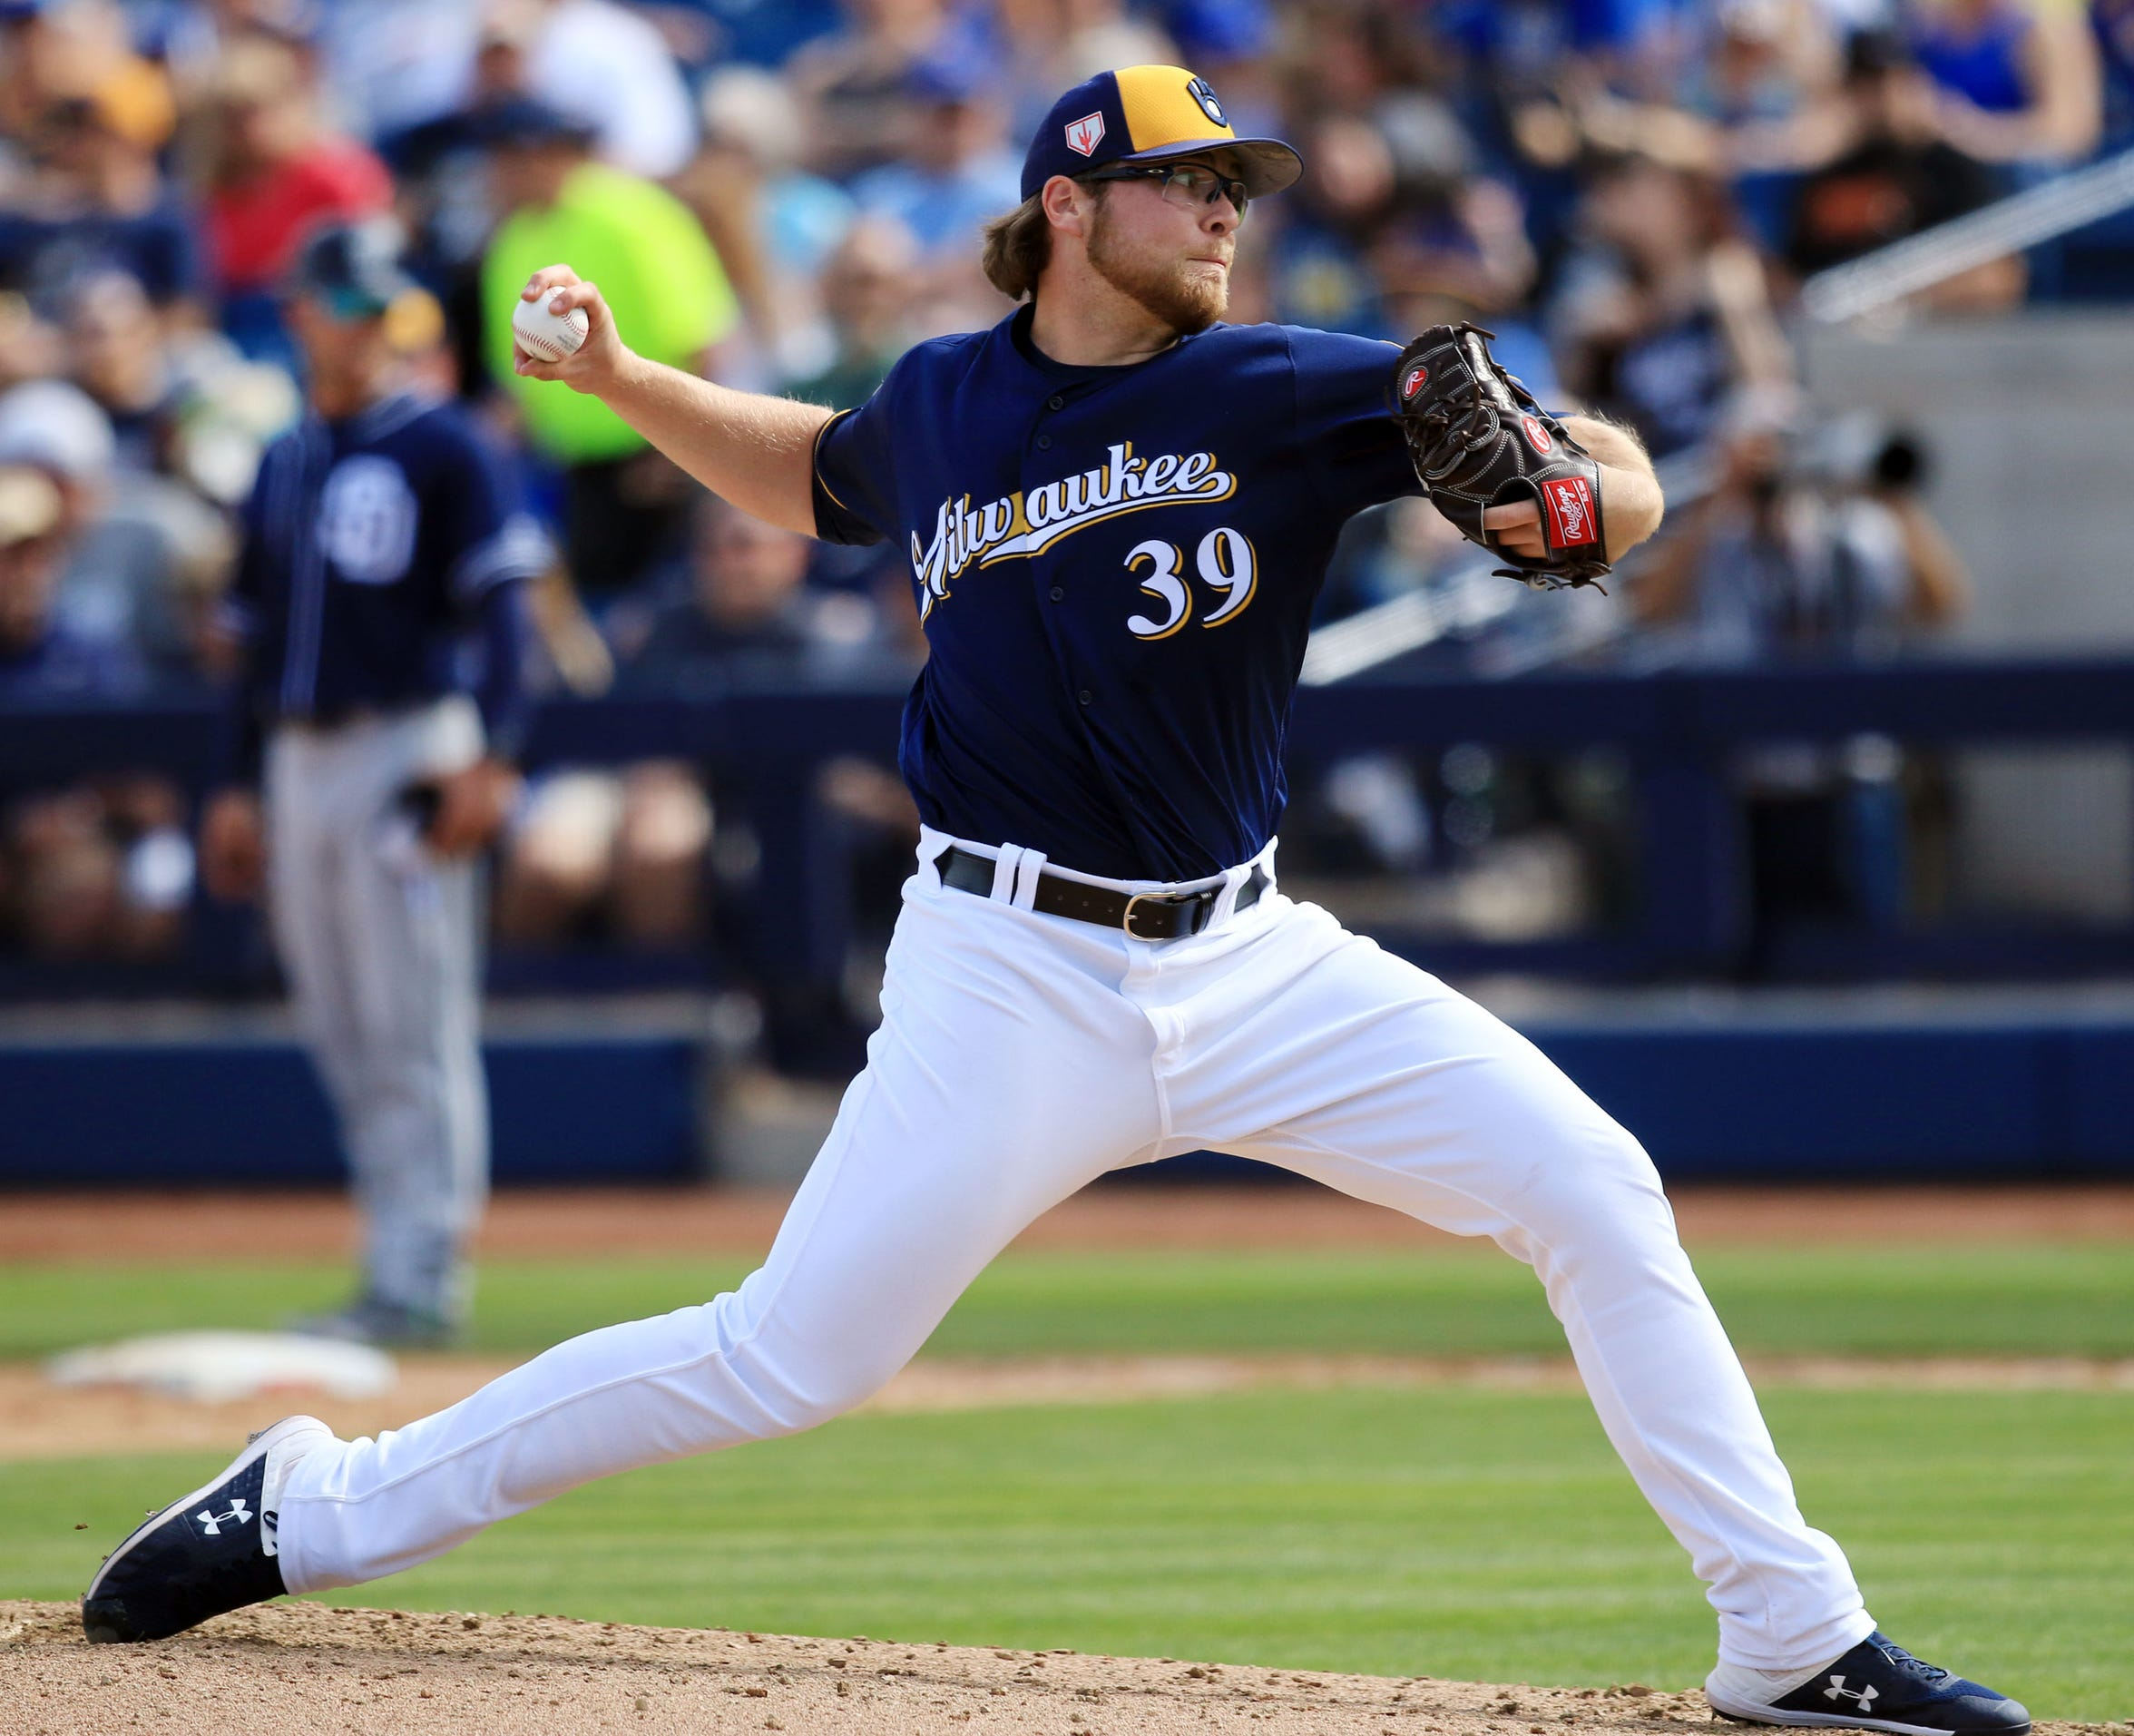 Milwaukee Brewers Corbin Burnes delivers a pitch during their spring training game against the San Diego Padres at American Family Fields of Phoenix, Tuesday, February 26, in Phoenix, Arizona.(Photo/Roy Dabner) ORG XMIT: RD076